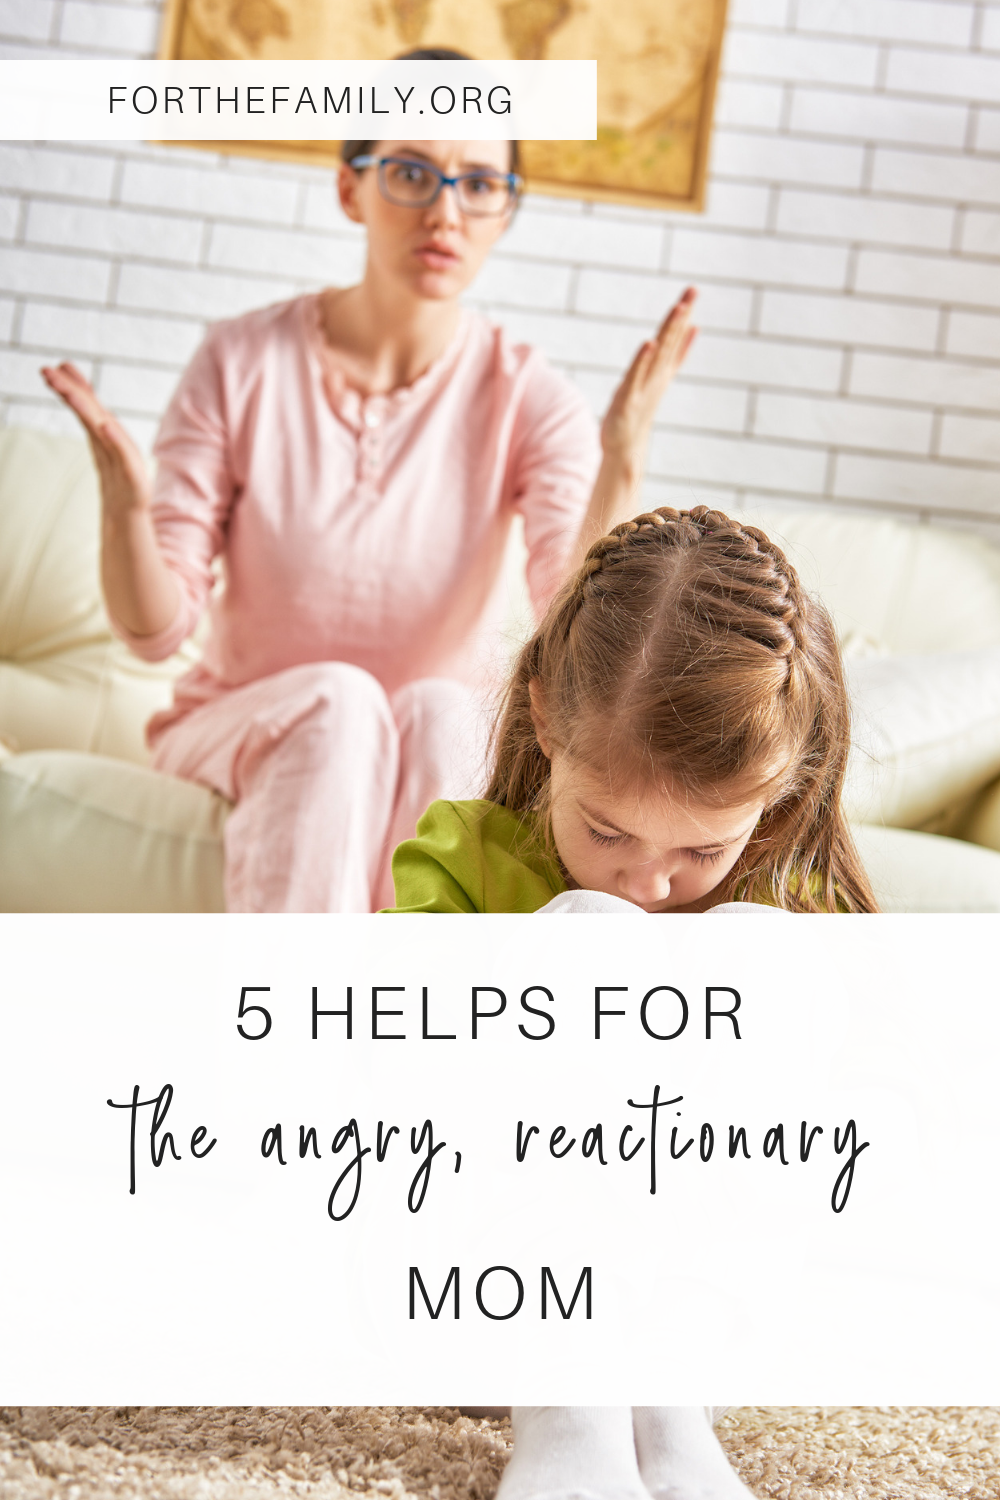 Does the behavior of your kids bring out the worst in you? How do you manage your emotions when your child can't manage theirs? Today we have hope and practical wisdom for reactionary parents. Help is right here!